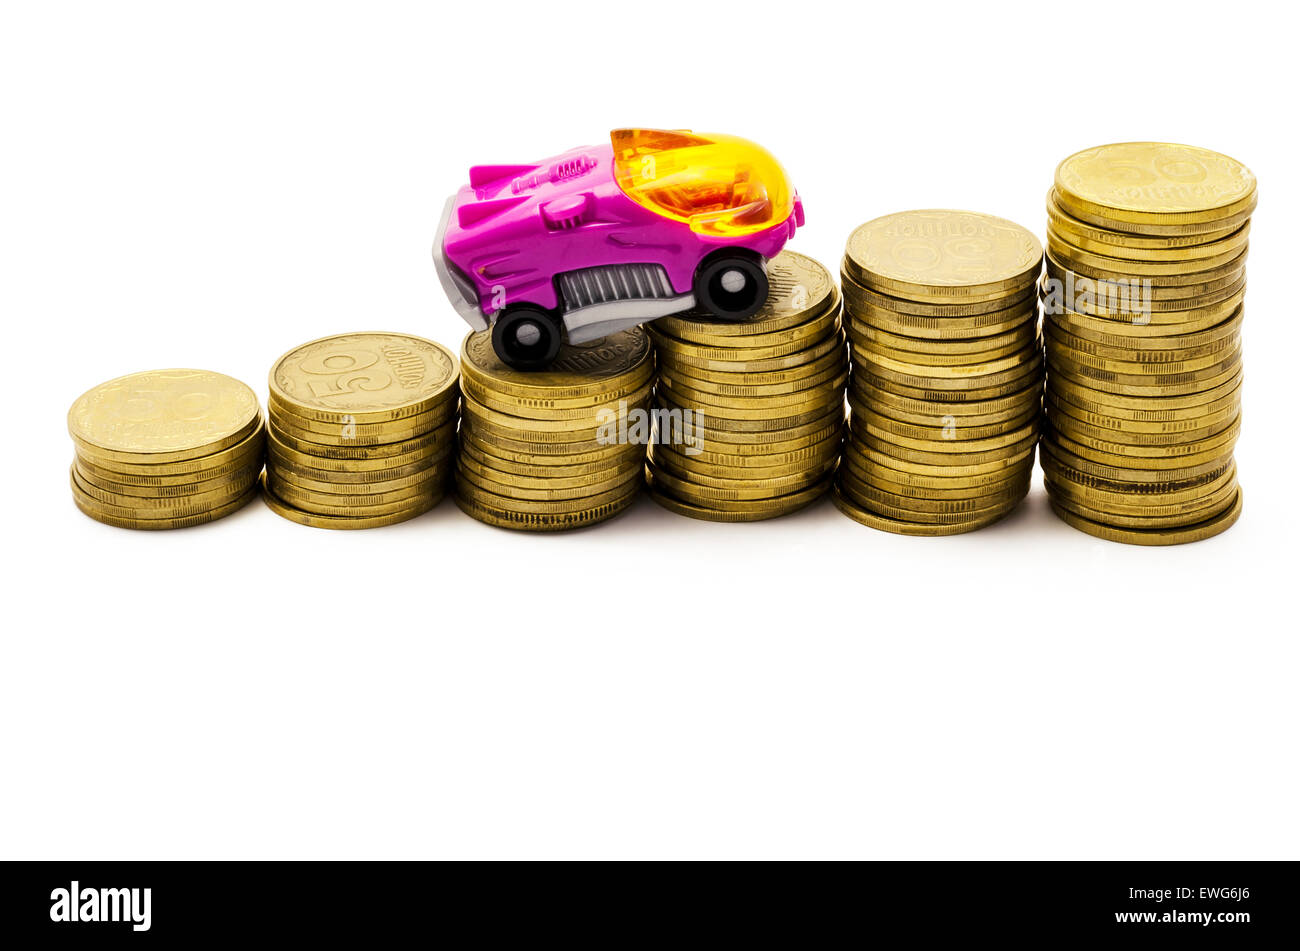 the car goes up after coins on a white background - Stock Image